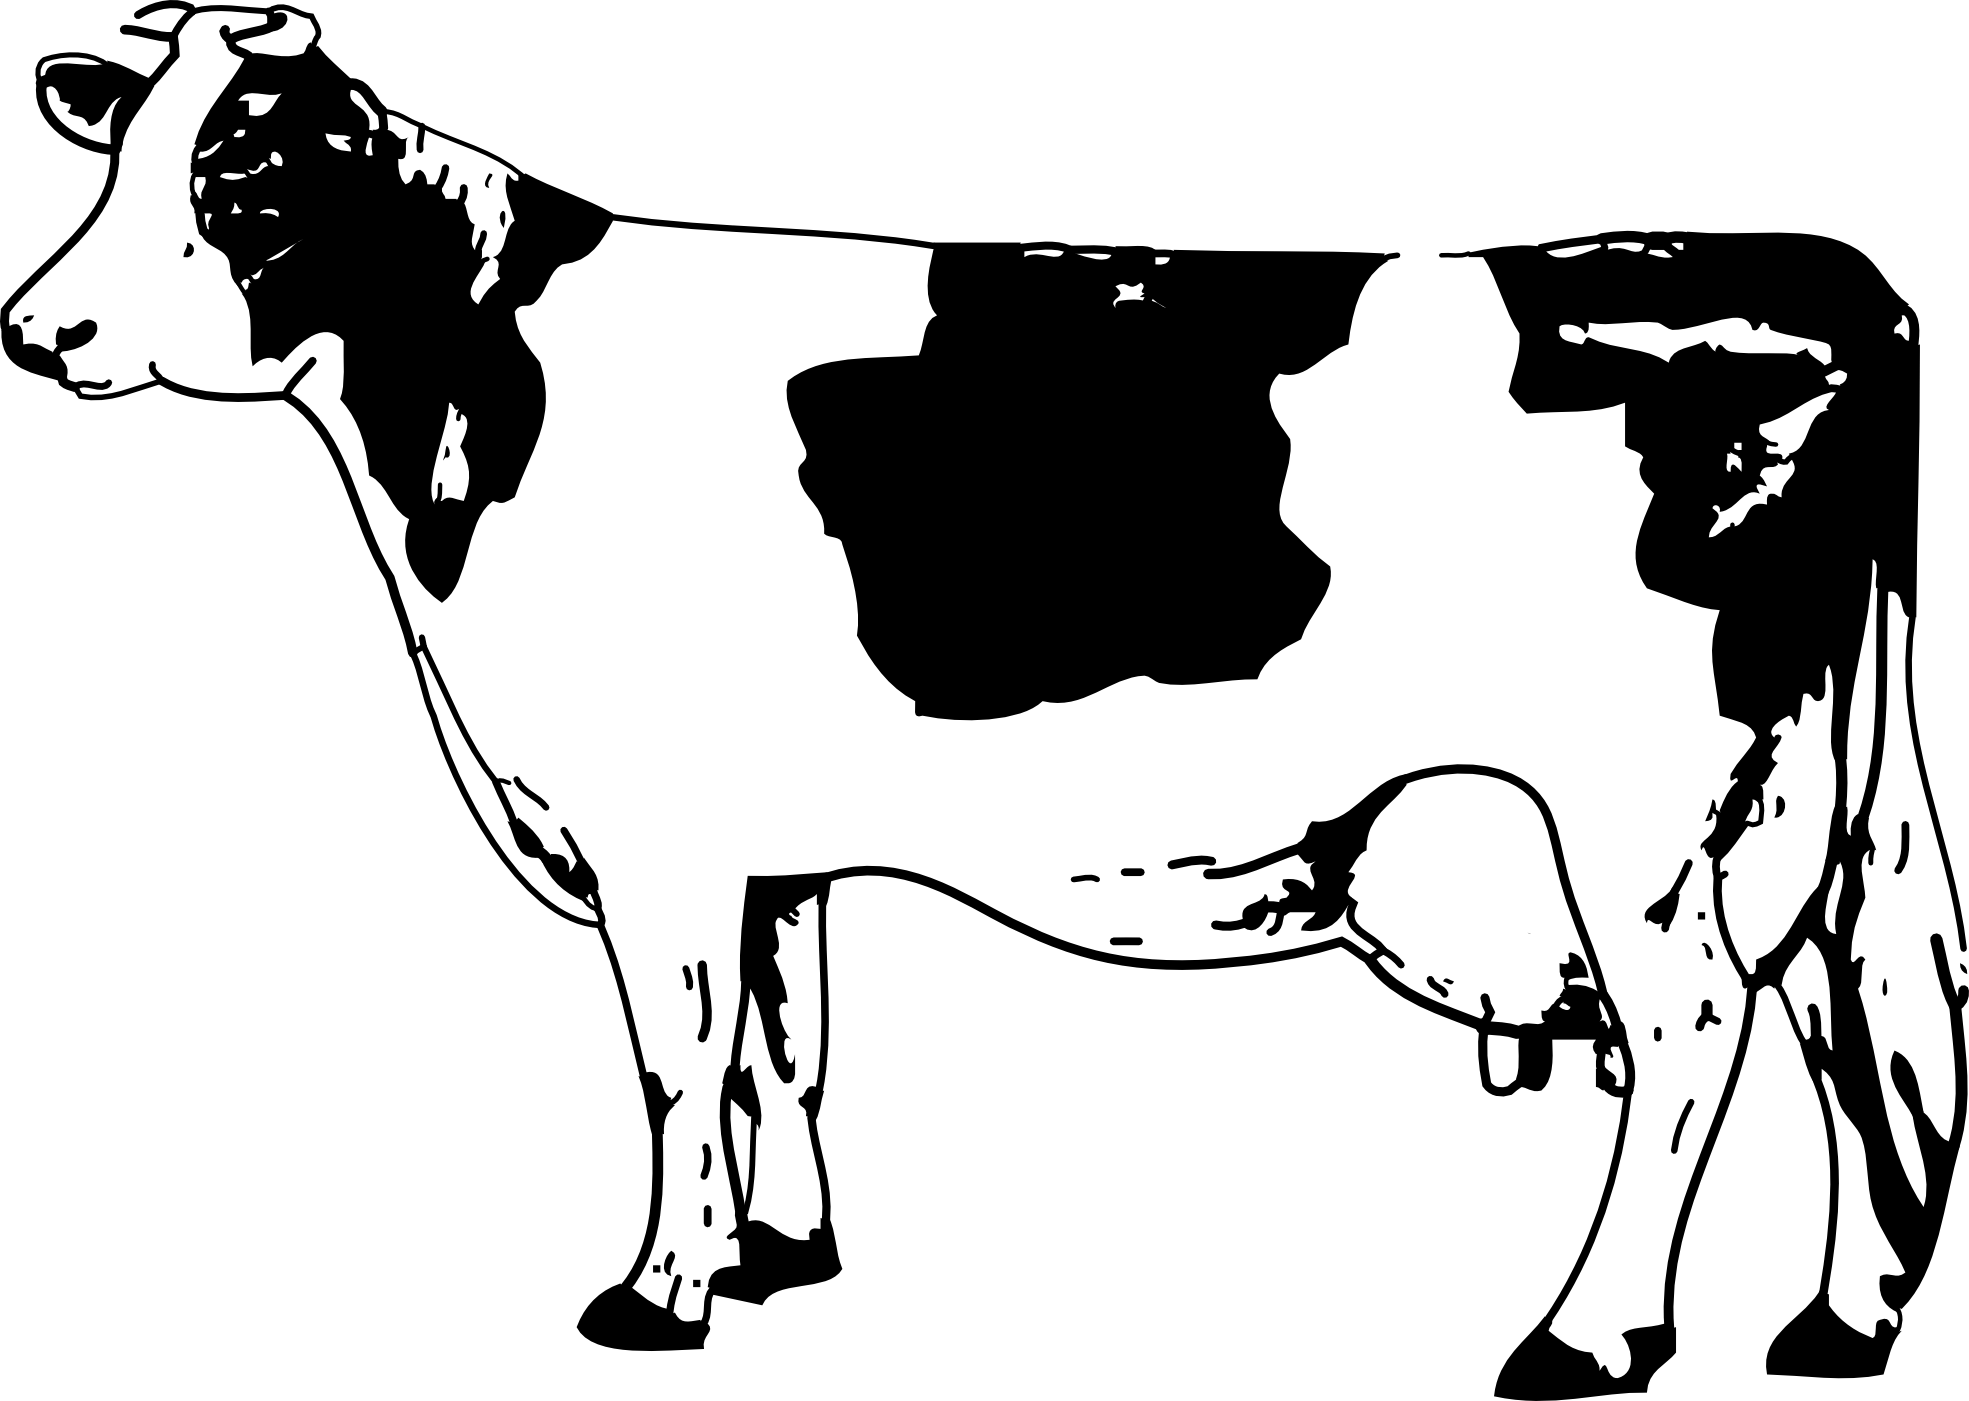 Clip art arts for. Clipart cow transparent background